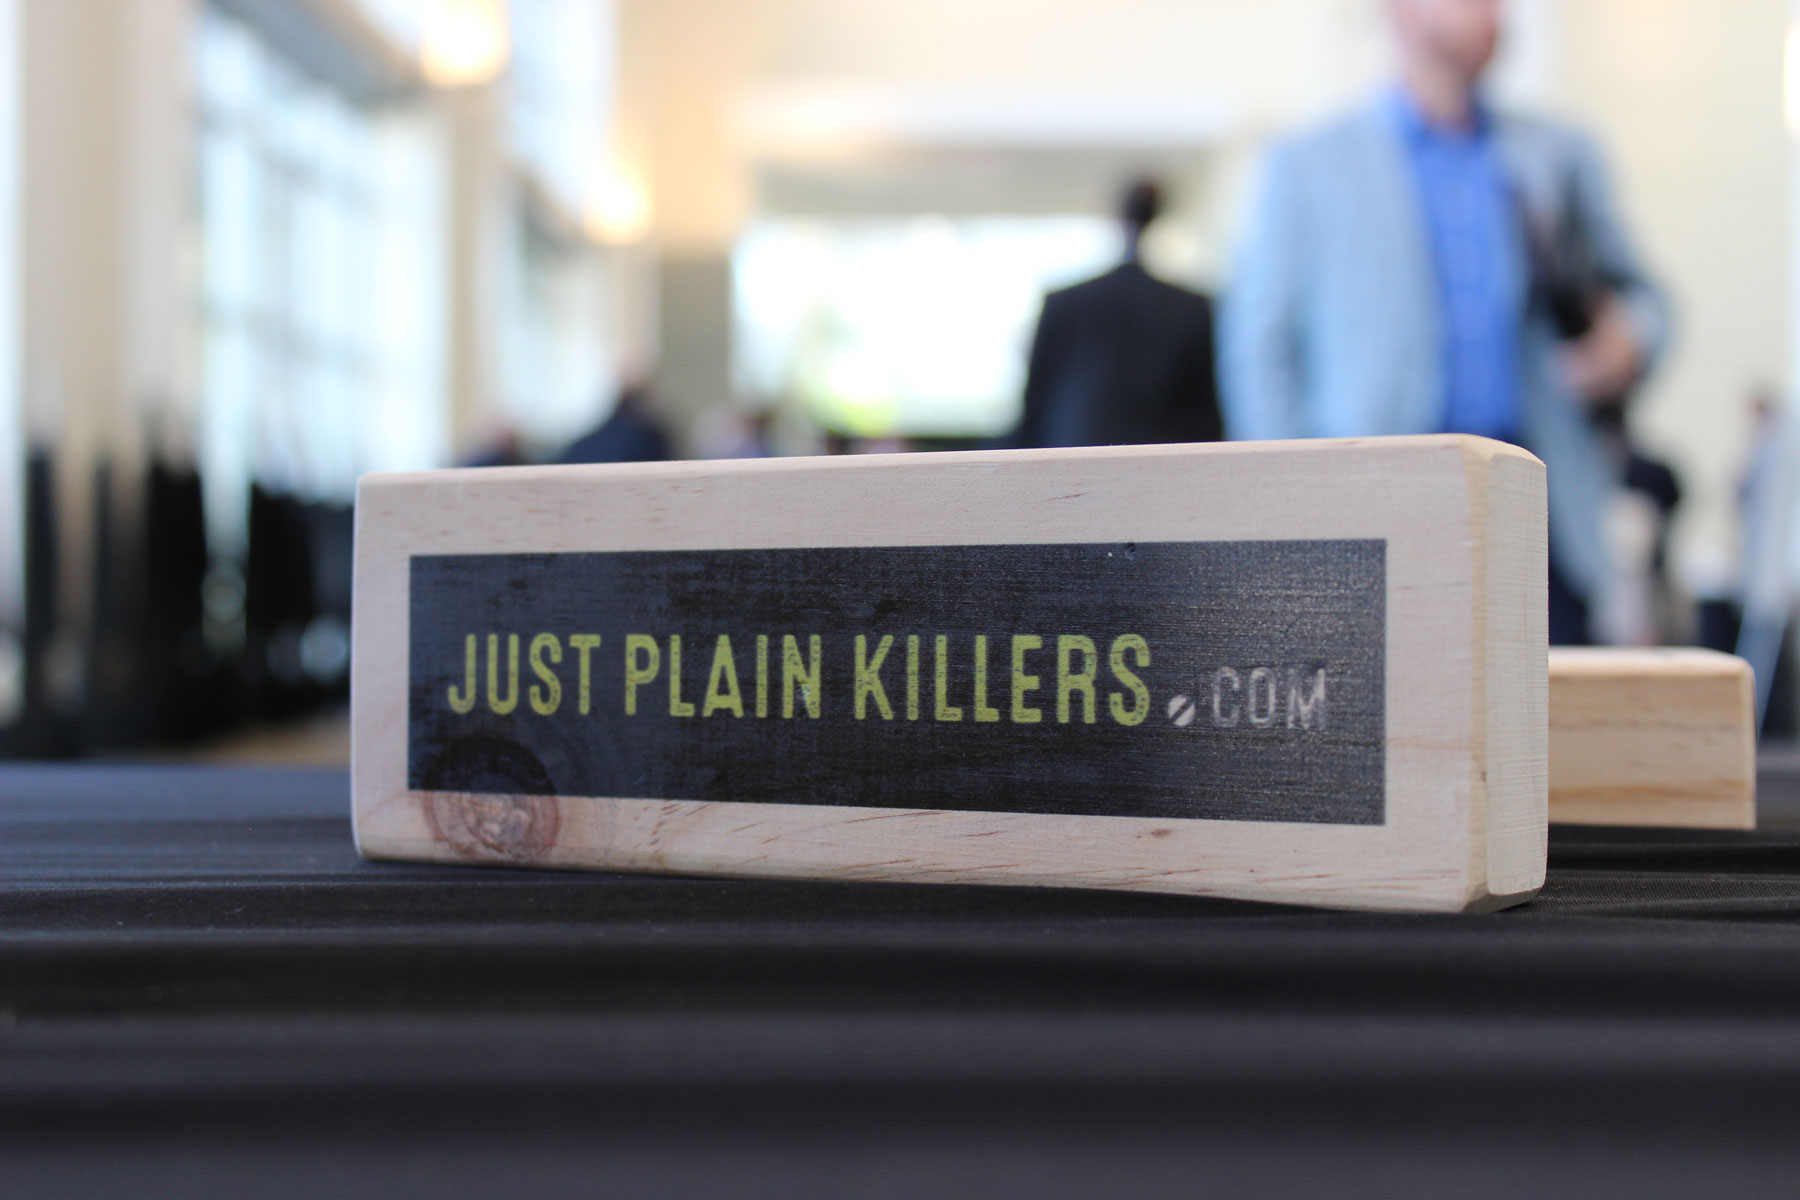 Each wooden block was branded with the Just Plain Killers logo